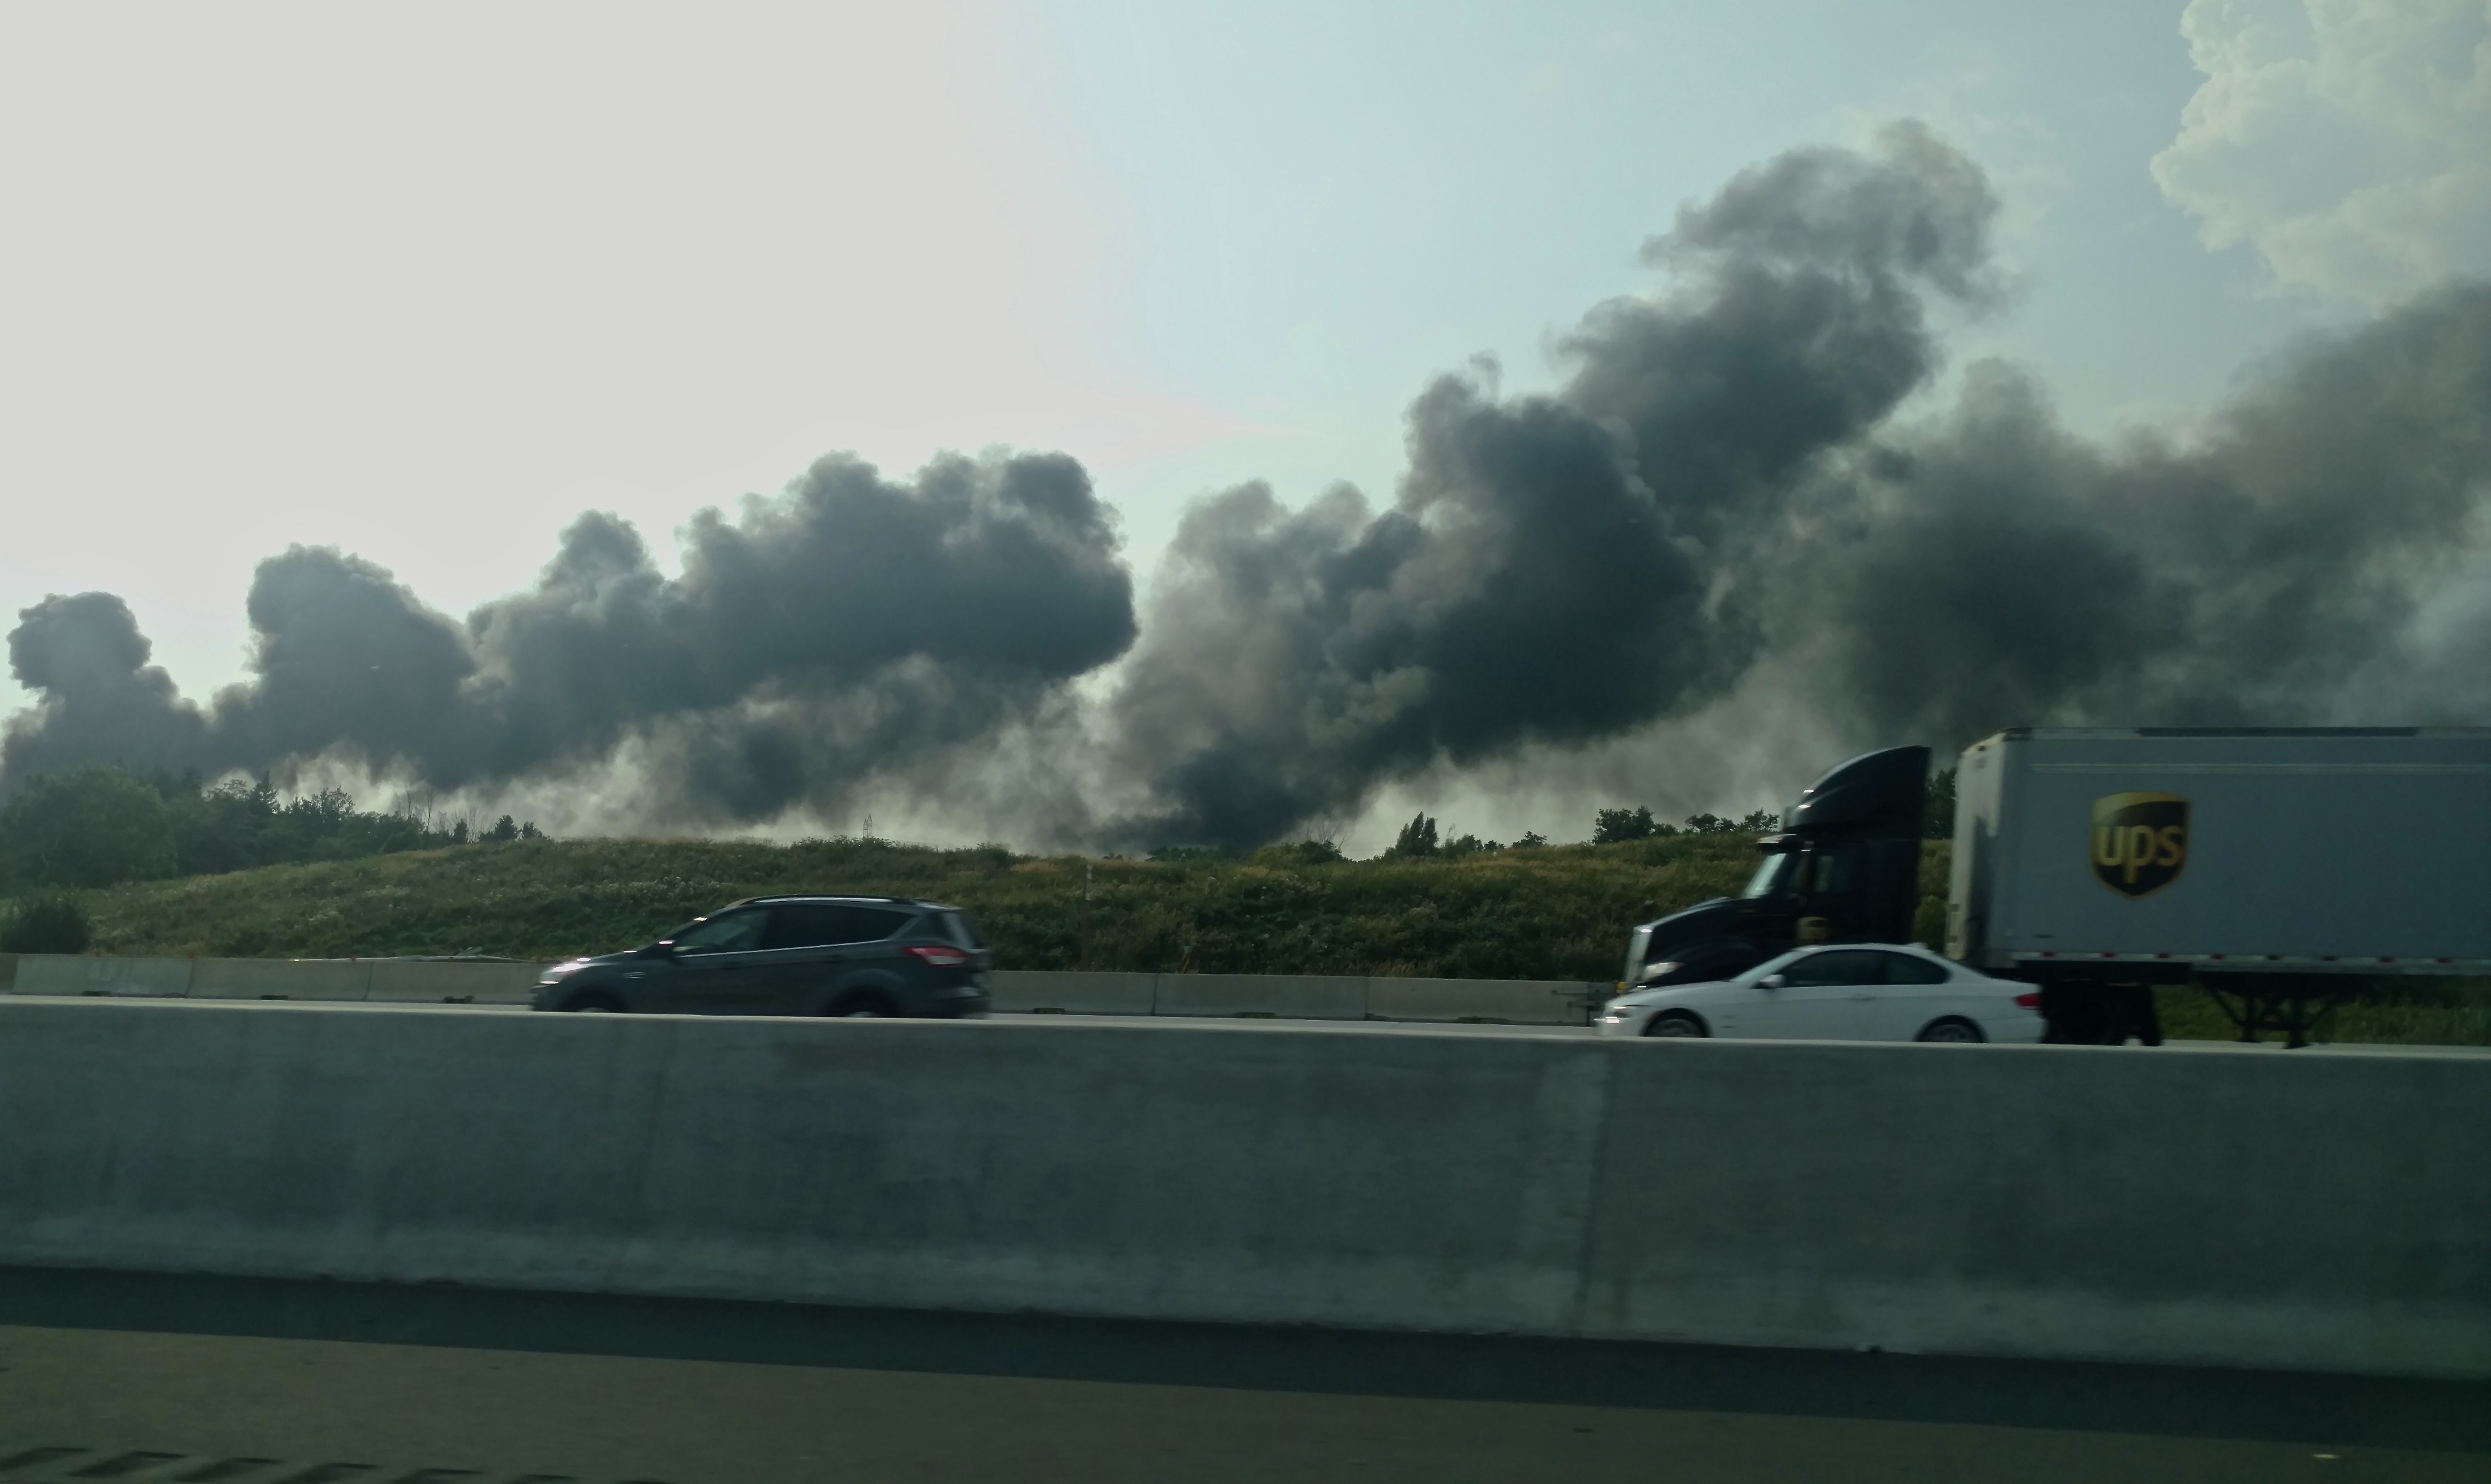 Two large plumes of smoke in the distance, with a busy highway in the foreground.